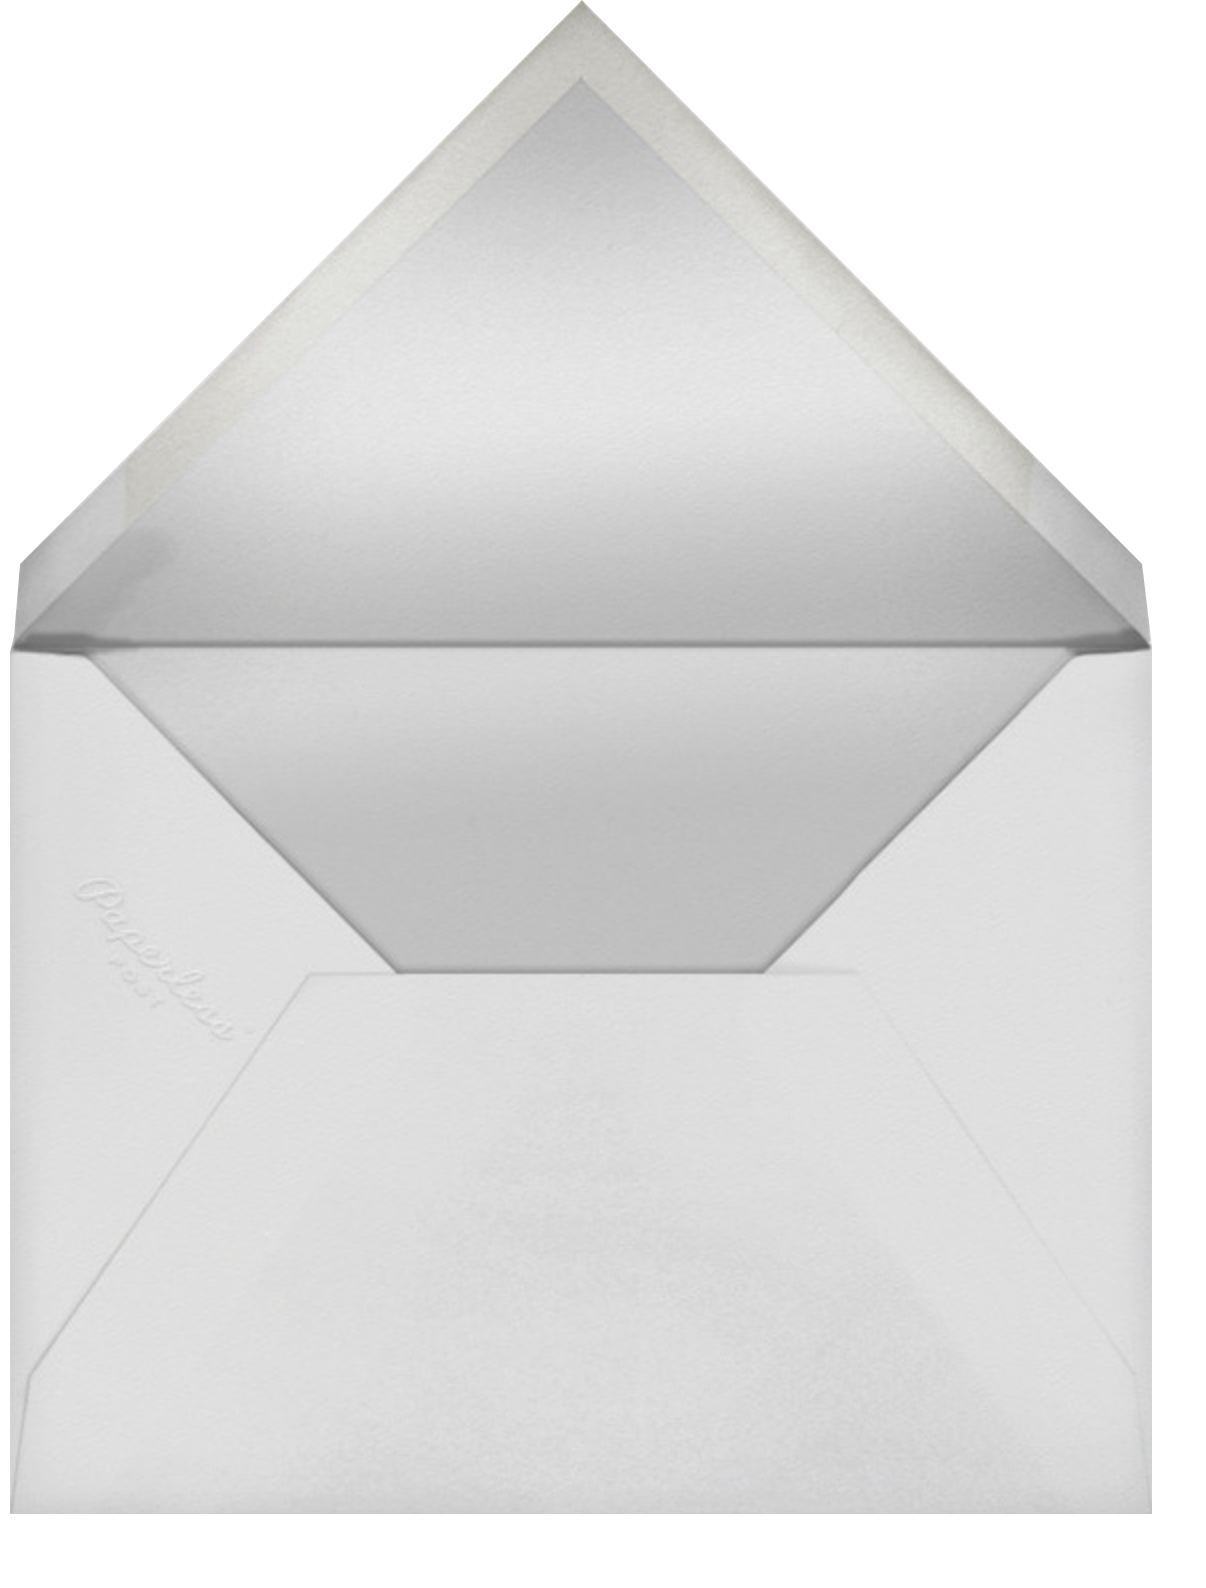 All-Star - Paperless Post - Father's Day - envelope back